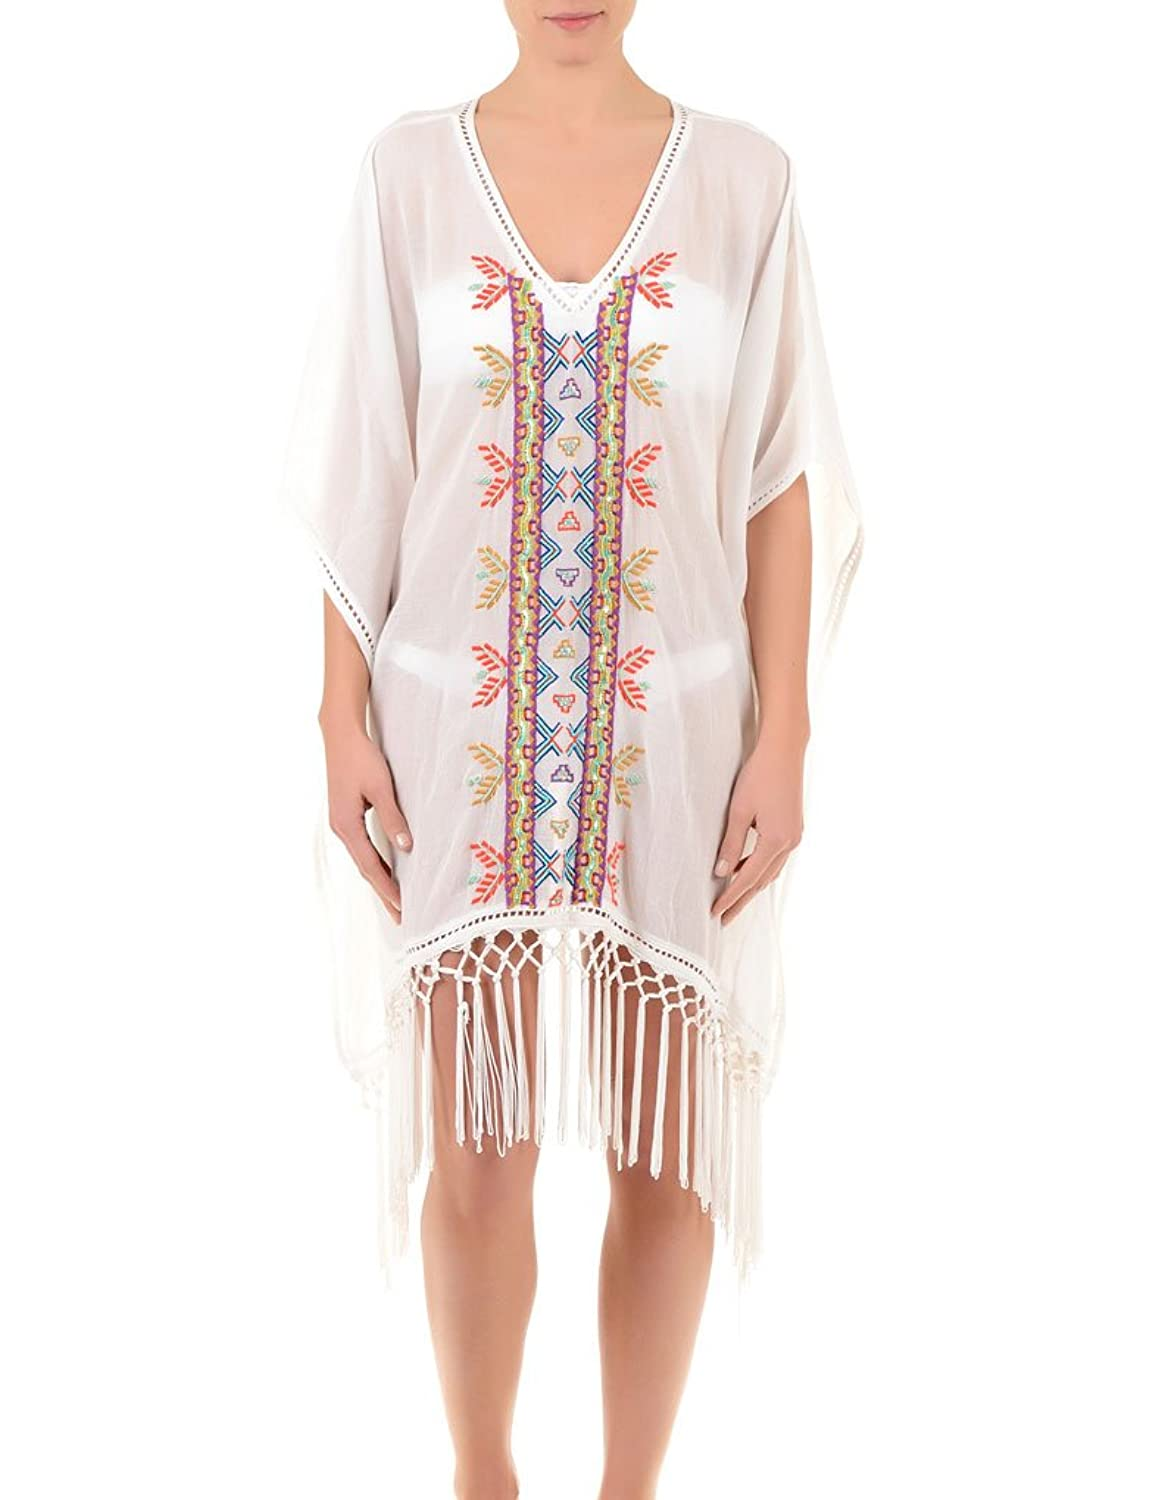 Iconique IC7-024 Women's White Aztec Embroidered Beach Dress Poncho Kaftan